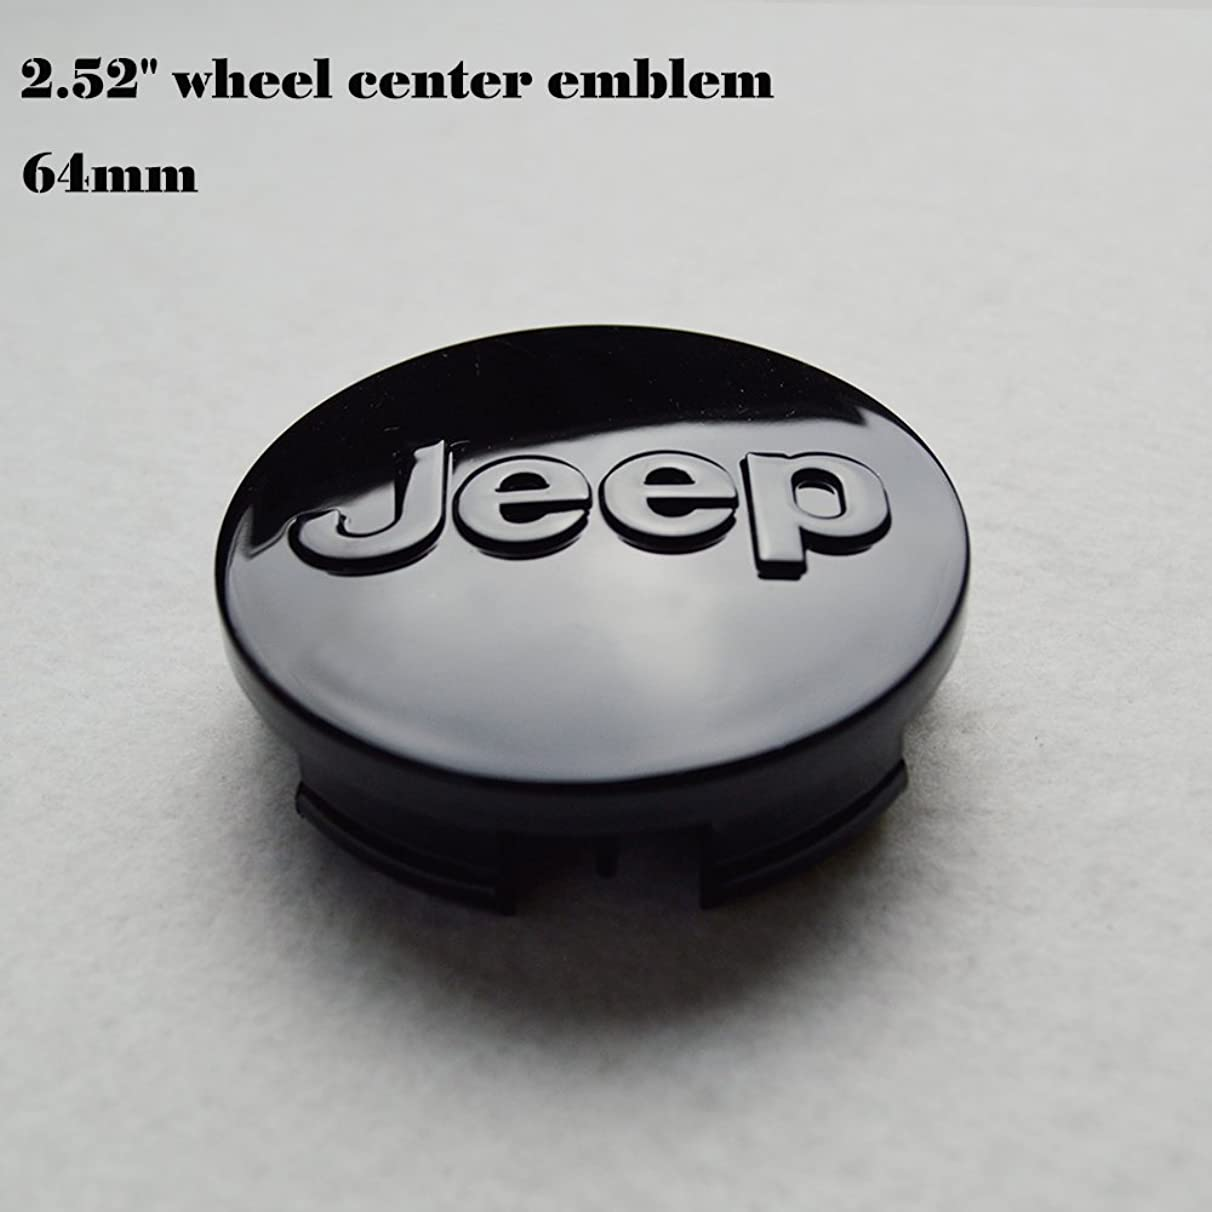 "Hanway 4 pcs 2.52""emblem black logo jeep emblem 64mm Wheel Center Caps Hubcaps For Jeep Grand Cherokee / Jeep Wrangler Rubicon / Liberty"